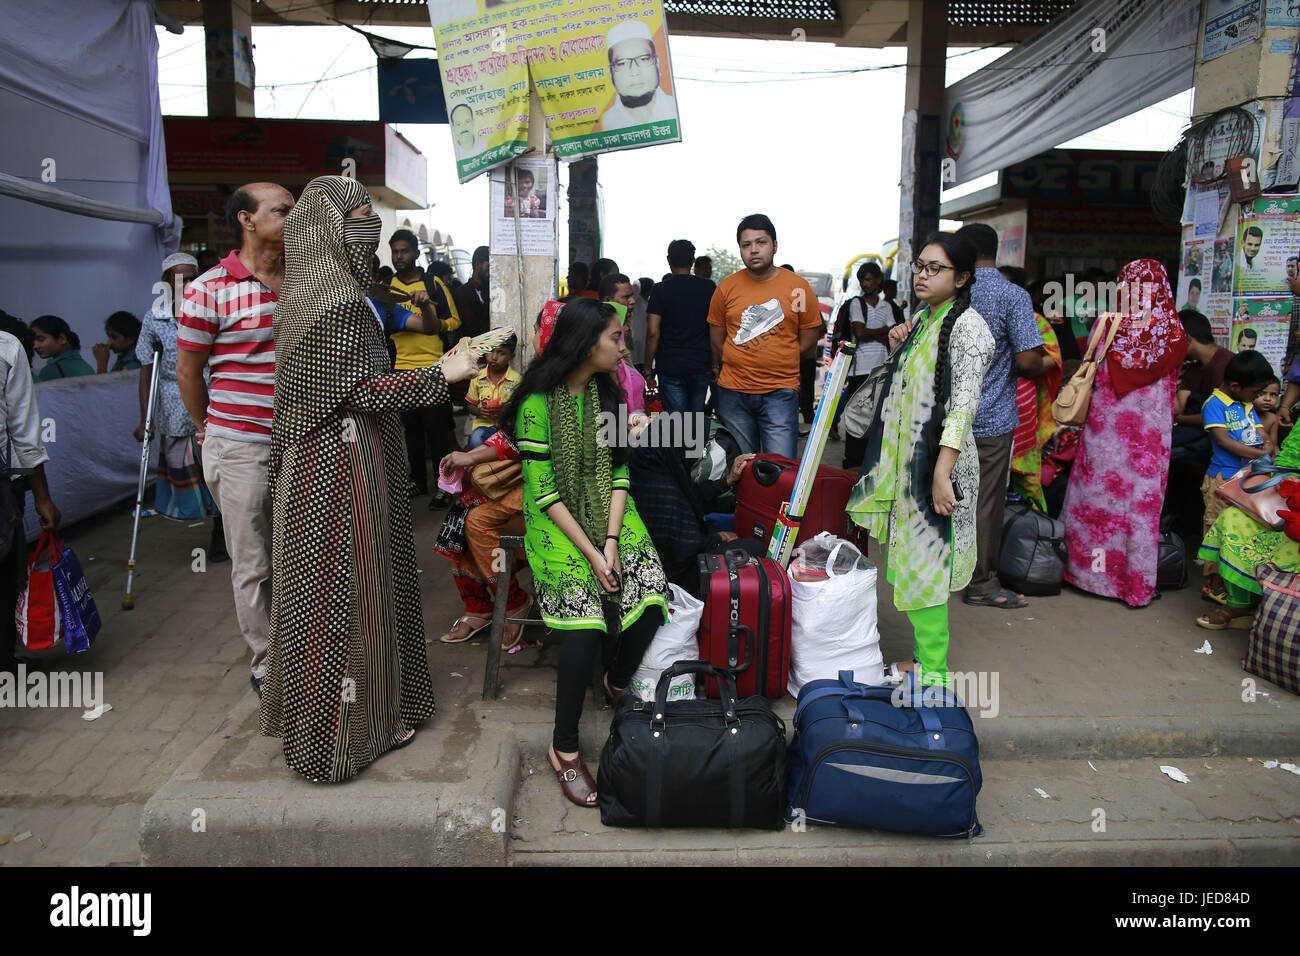 June 23, 2017 - Dhaka, Bangladesh - Bangladeshi homebound people wait for Bus as they head to their hometowns ahead - Stock Image